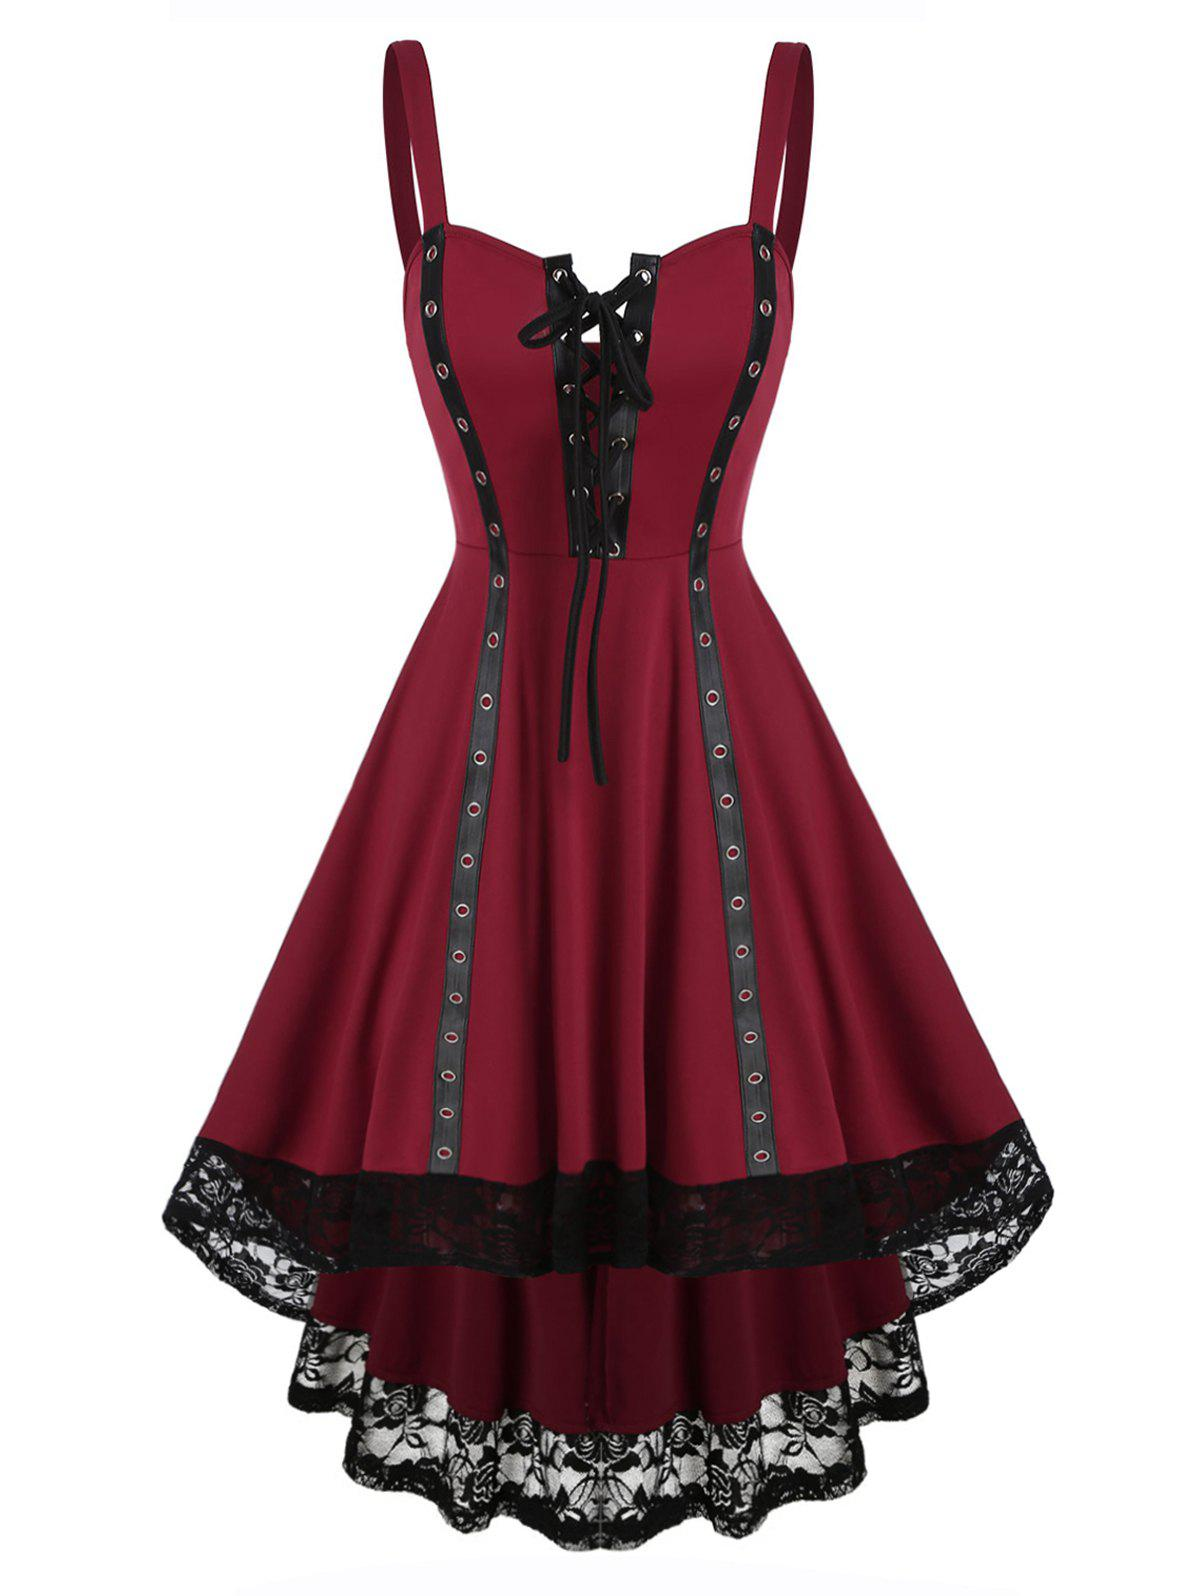 Lace Grommet Colorblock High Low Dress - RED WINE L